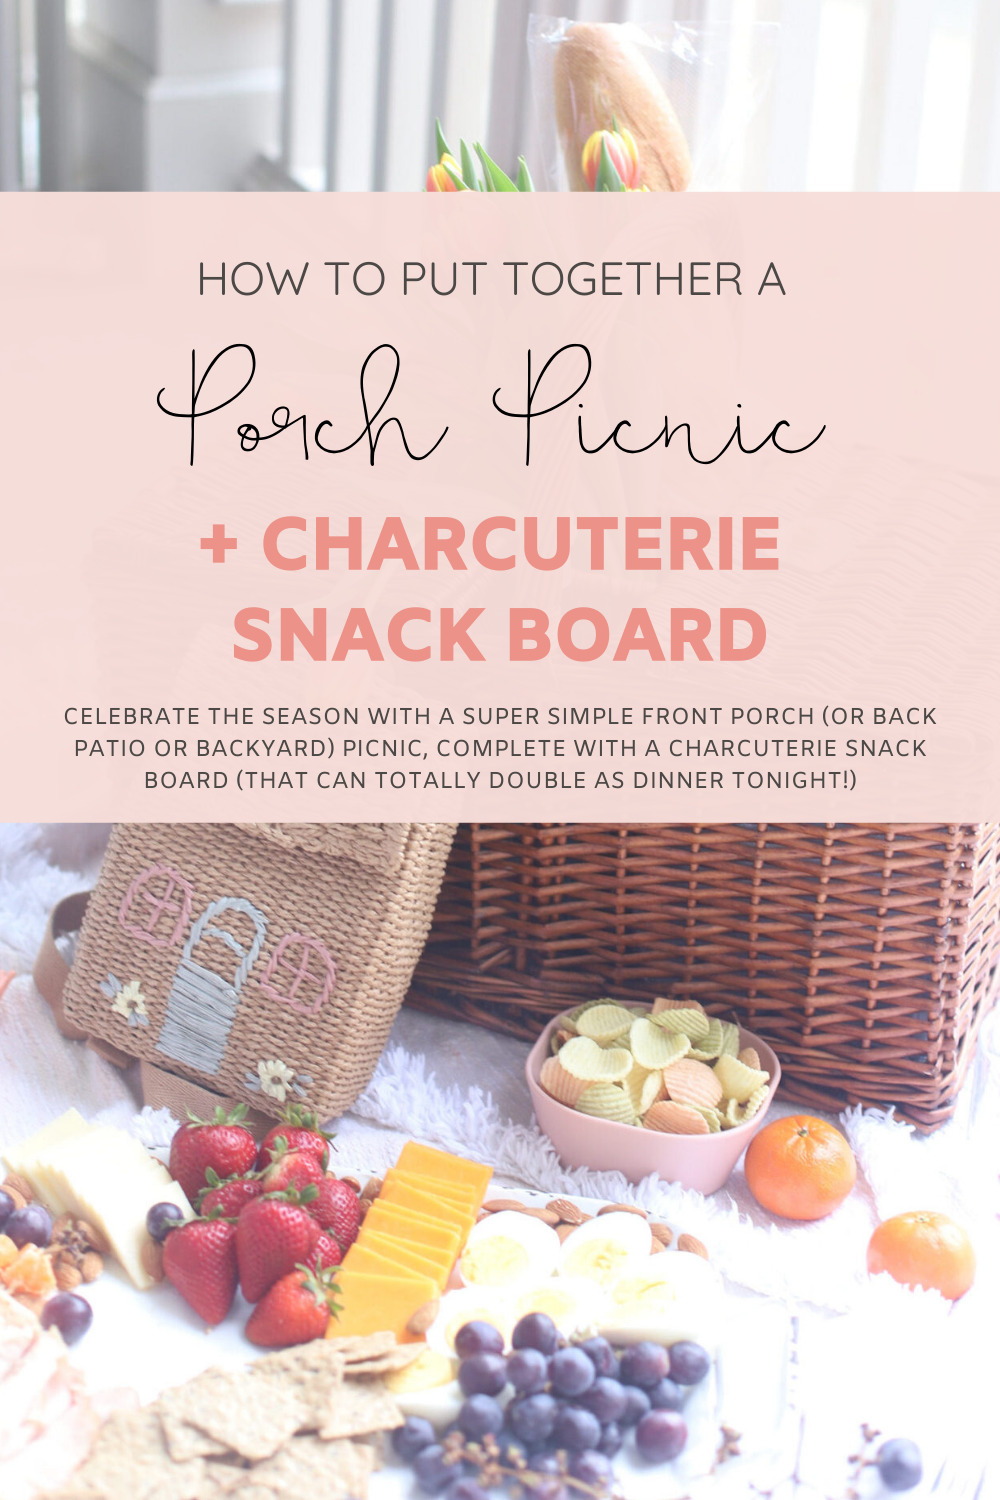 How to Throw a Super Simple Front Porch Picnic Including a Kid-Friendly and Delicious Snack Charcuterie Board | @glitterinclexi | GLITTERINC.COM